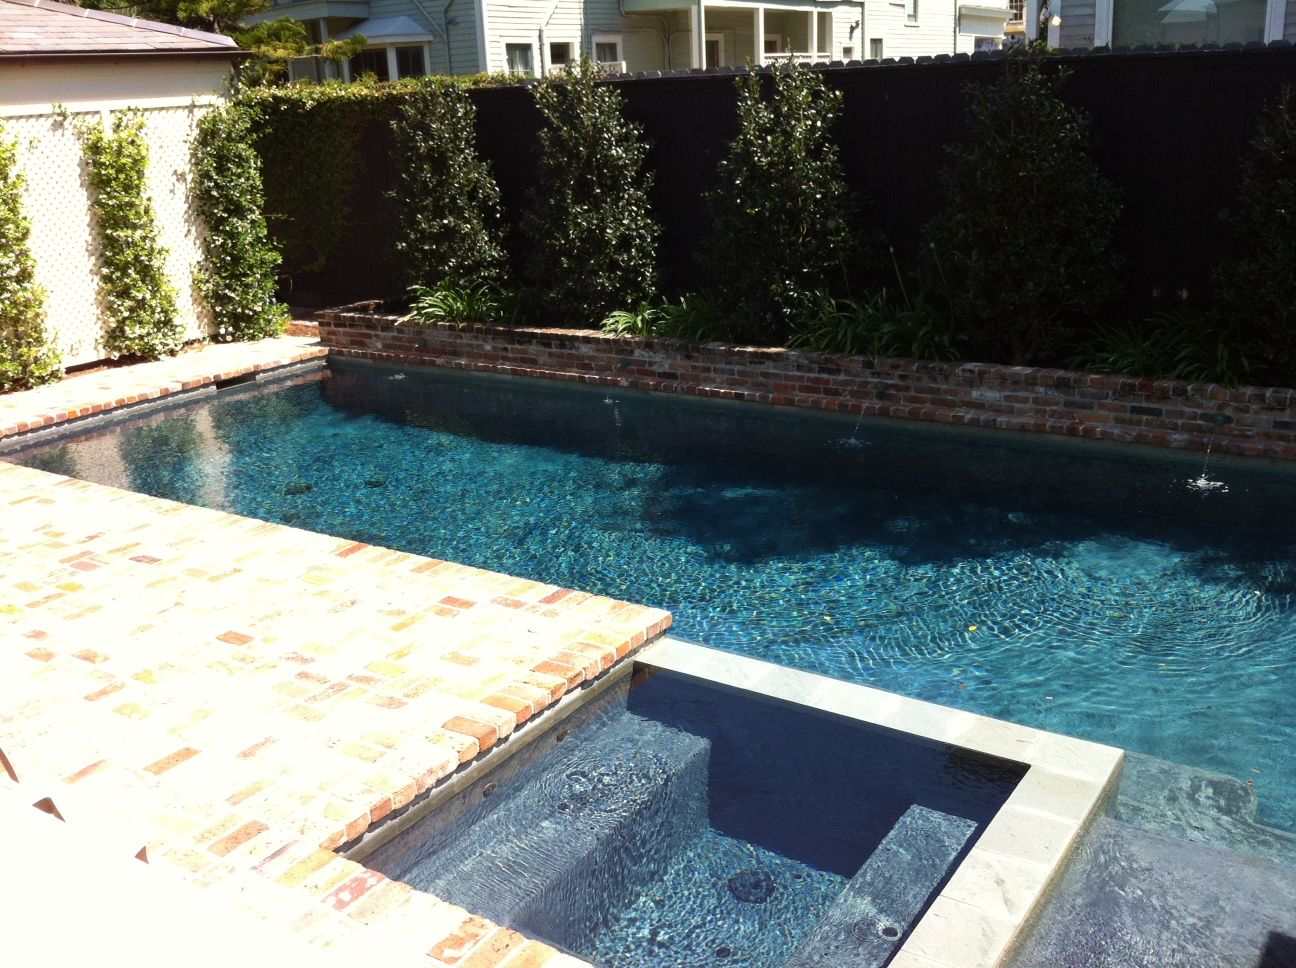 Small yard pool dream yard pinterest for Pictures of small pools